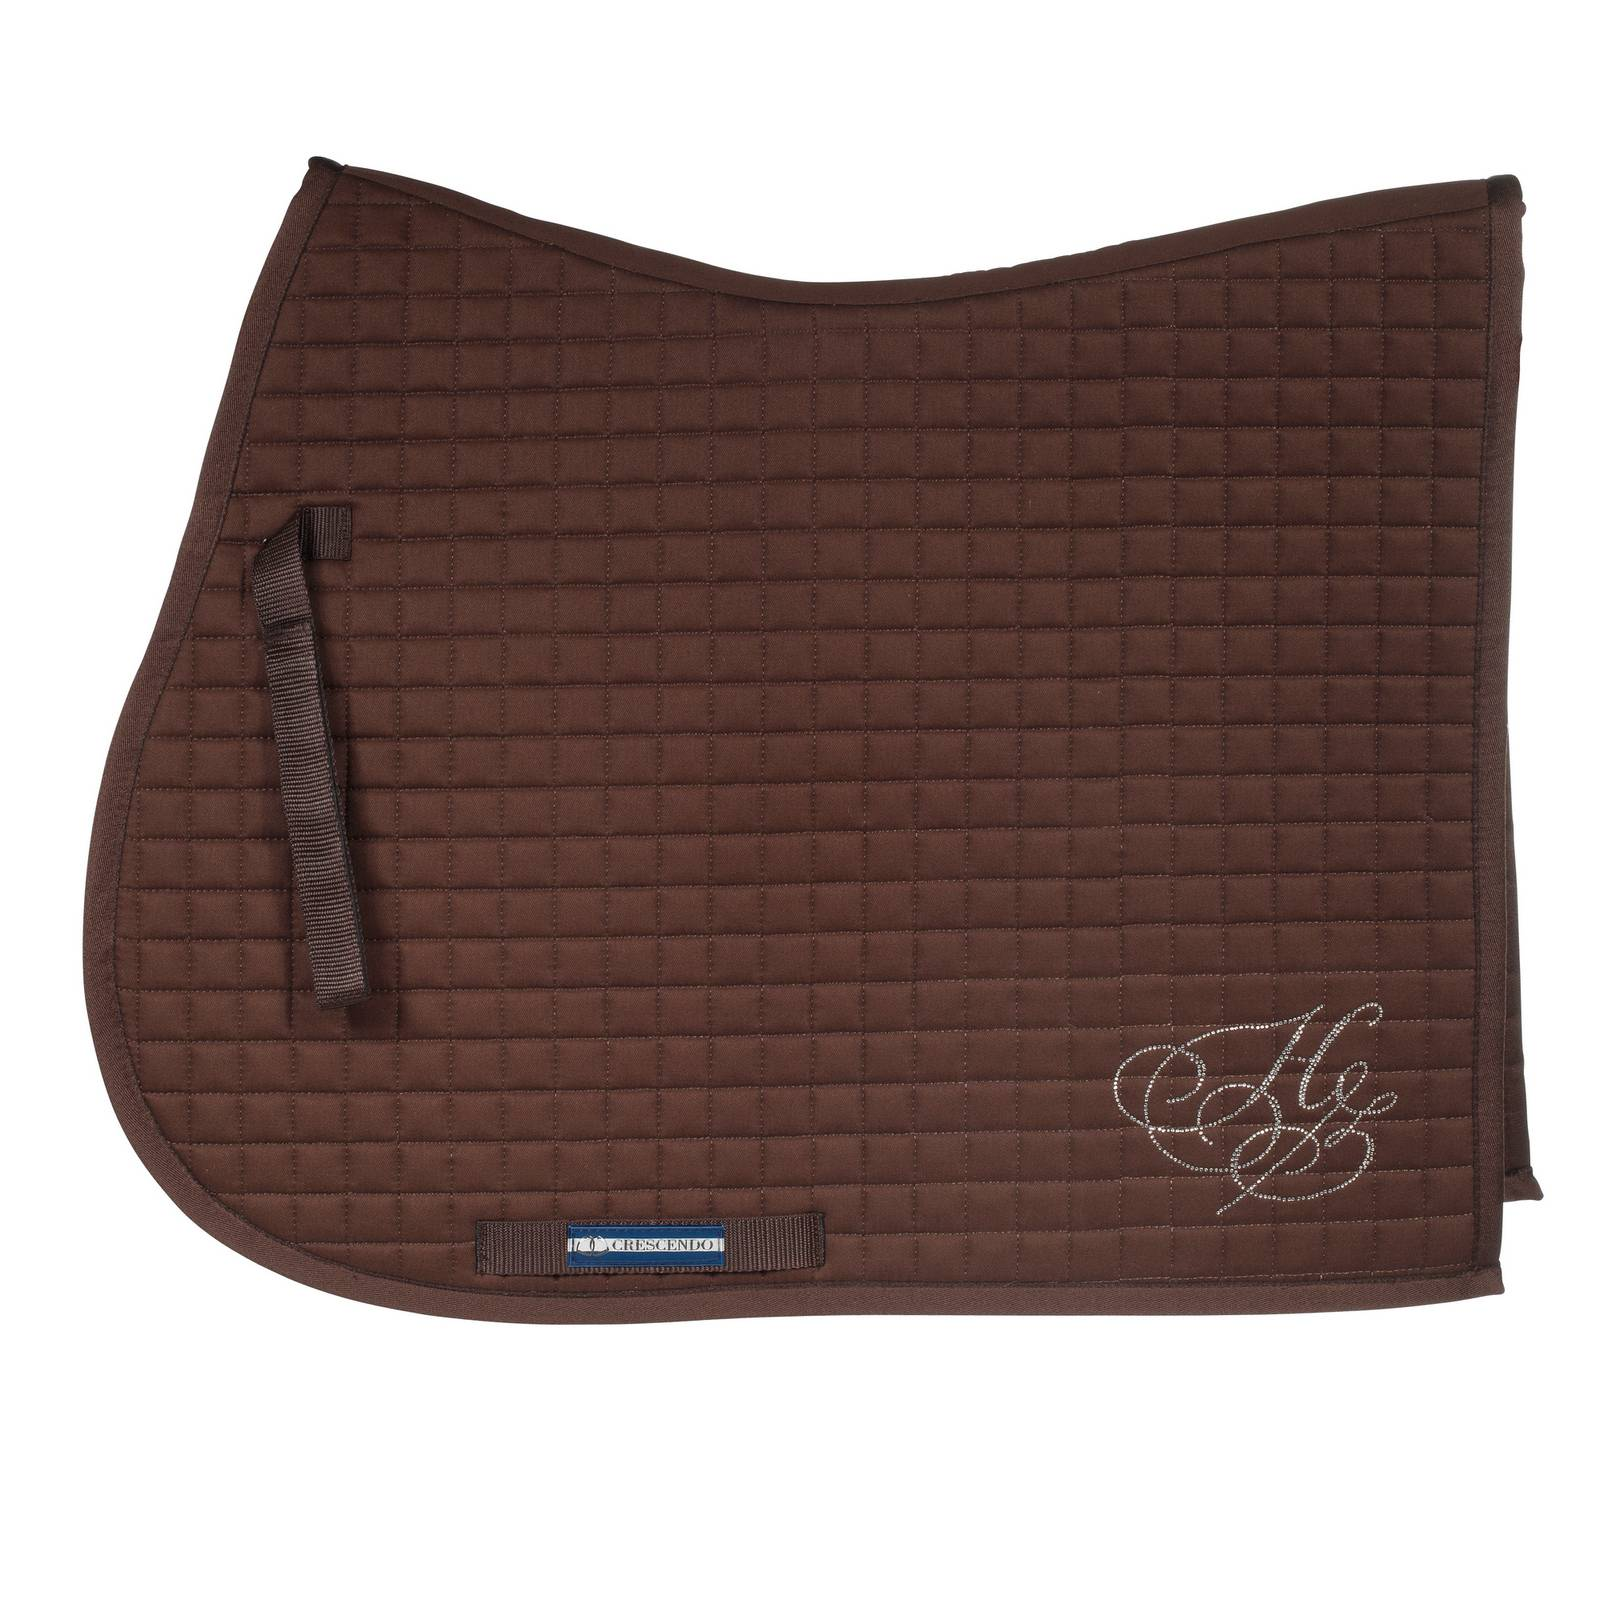 Horze Marseille Saddle Pad - All Purpose